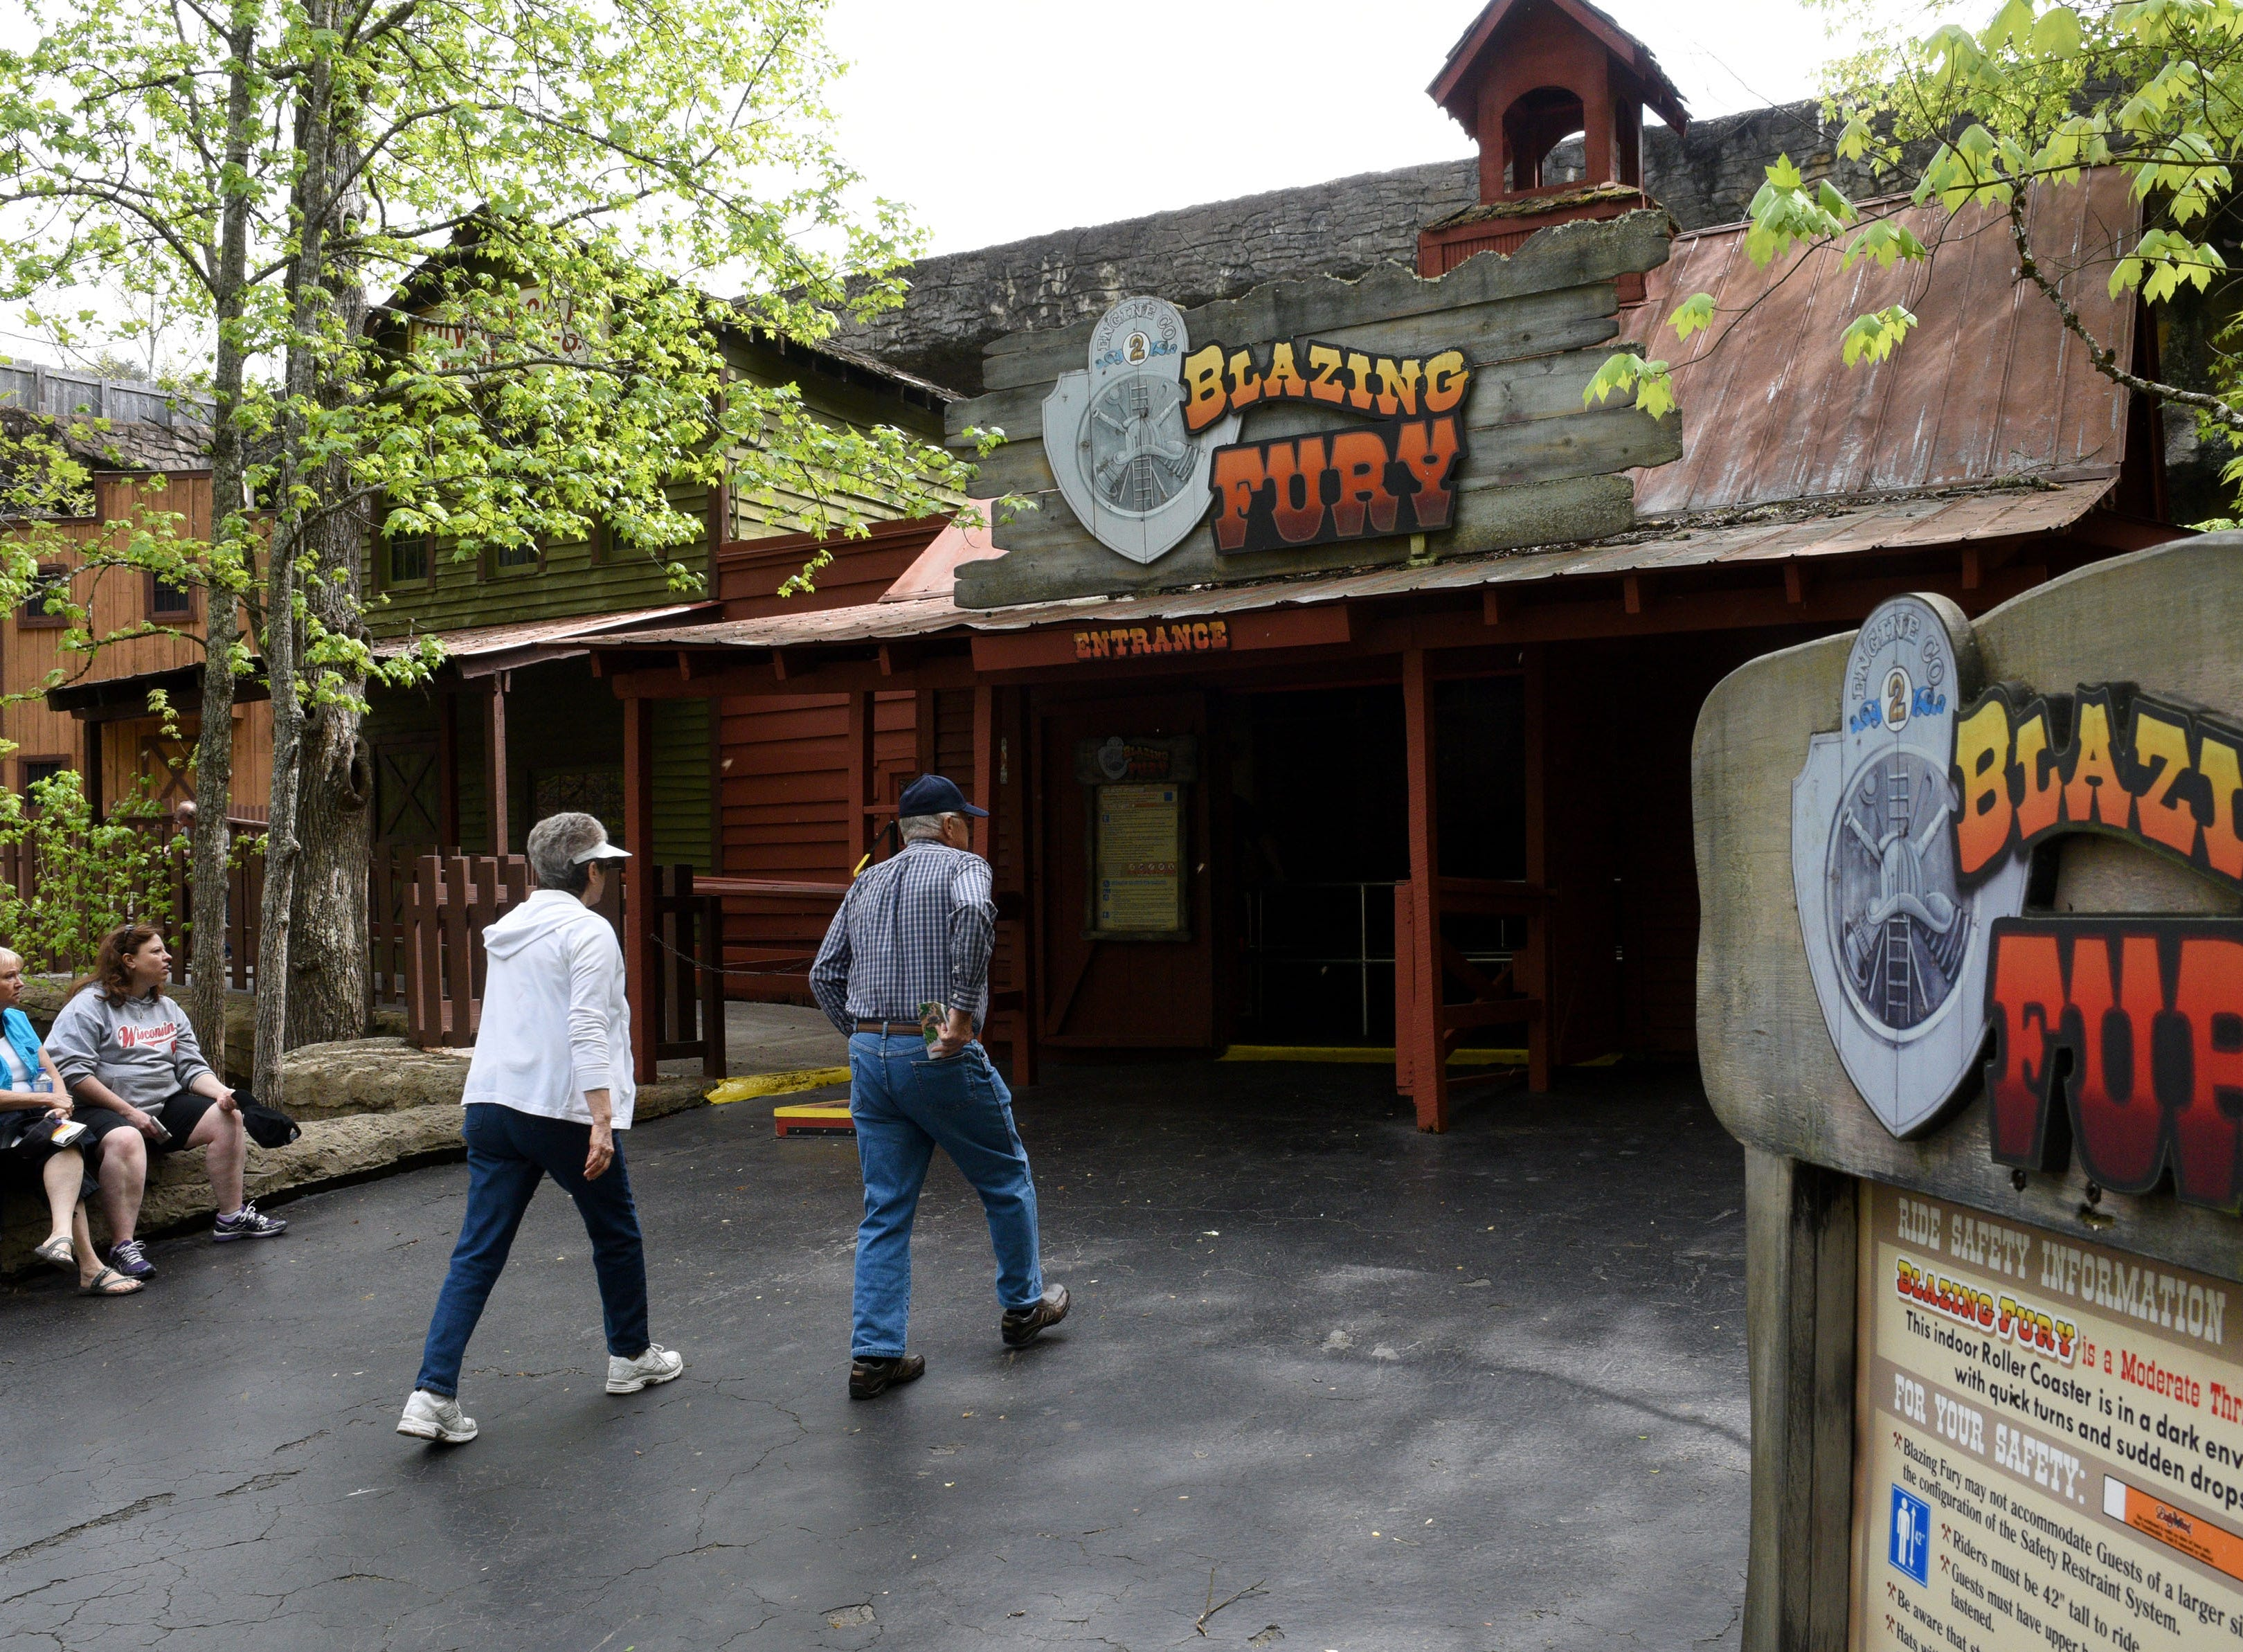 The Blazing Fury ride was built in-house by Silver Dollar City Tennessee in 1978, prior to the park becoming Dollywood. It is still a favorite for visitors to Dollywood during their 30th anniversary Wednesday, Apr. 22, 2015.